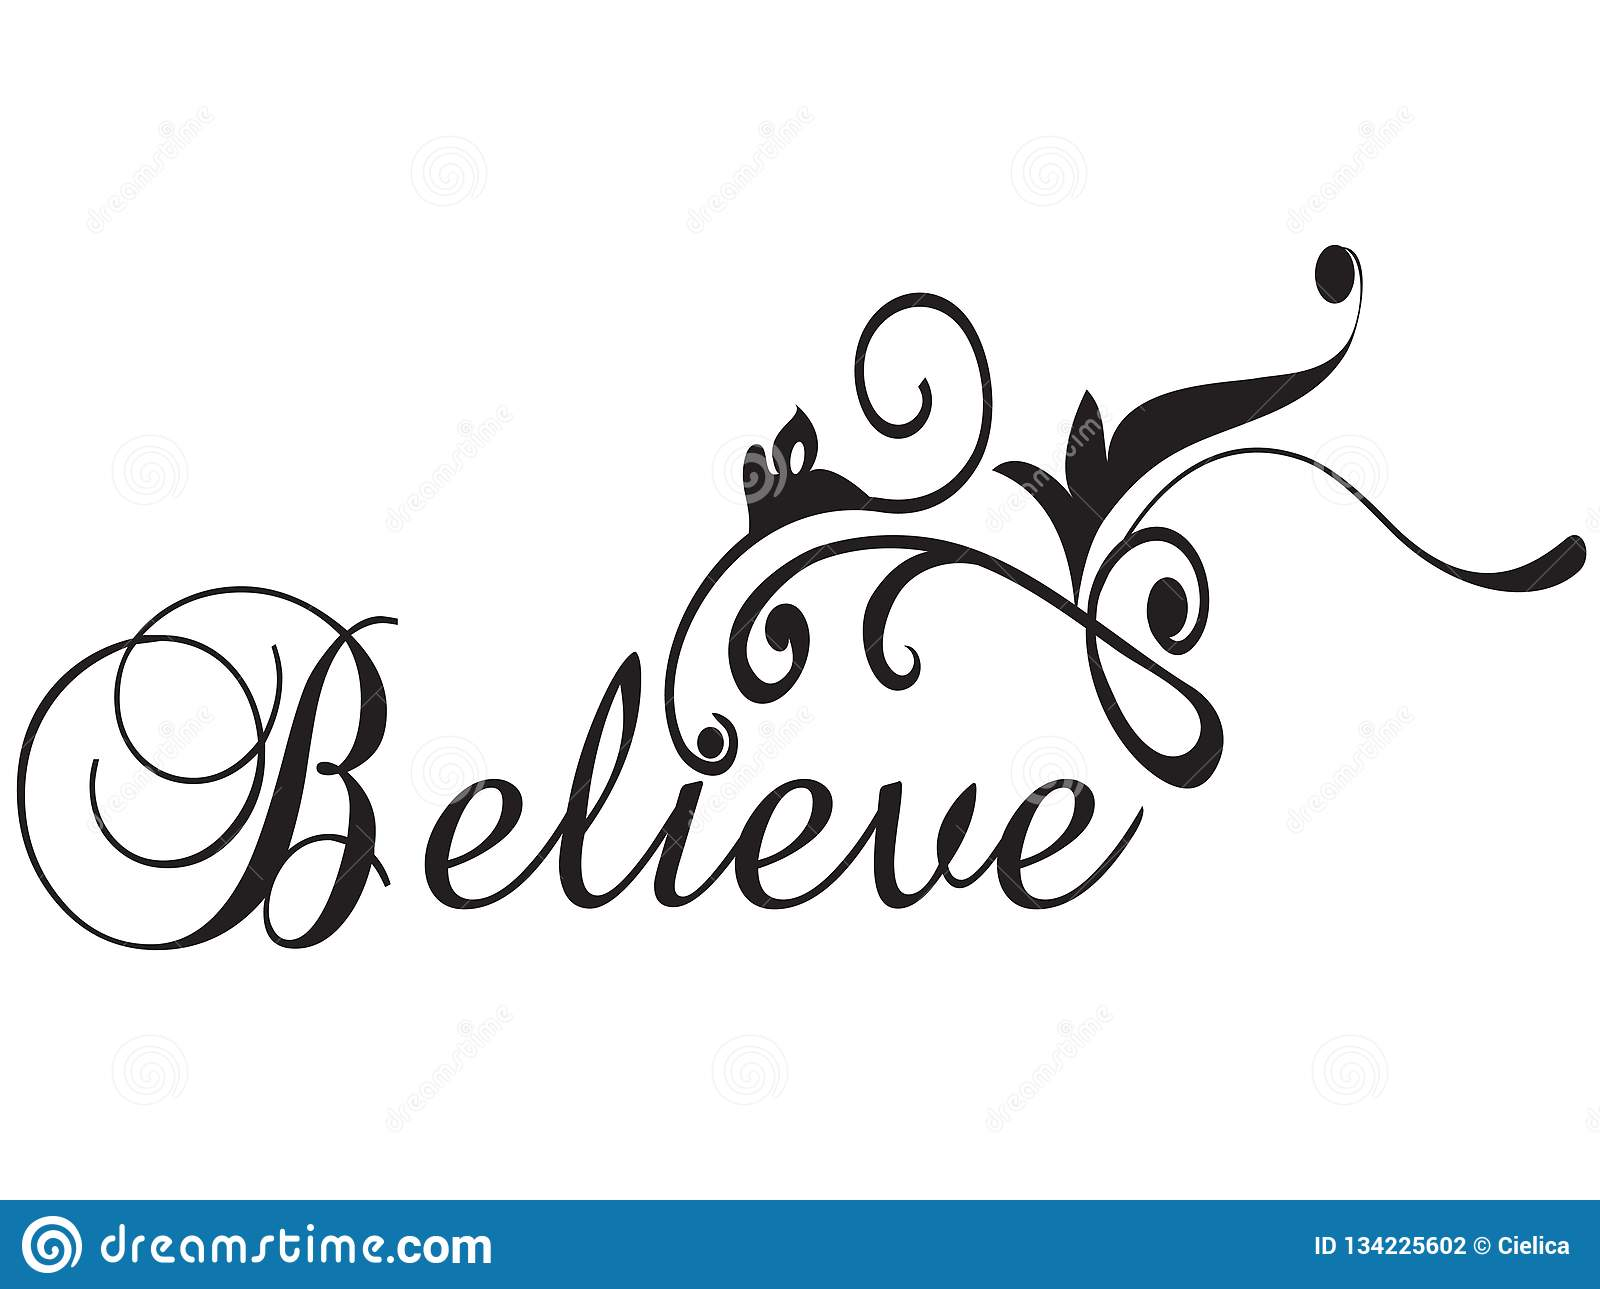 Believe Inspirational Quote Positive Thinking SVG DXF EPS Vector.